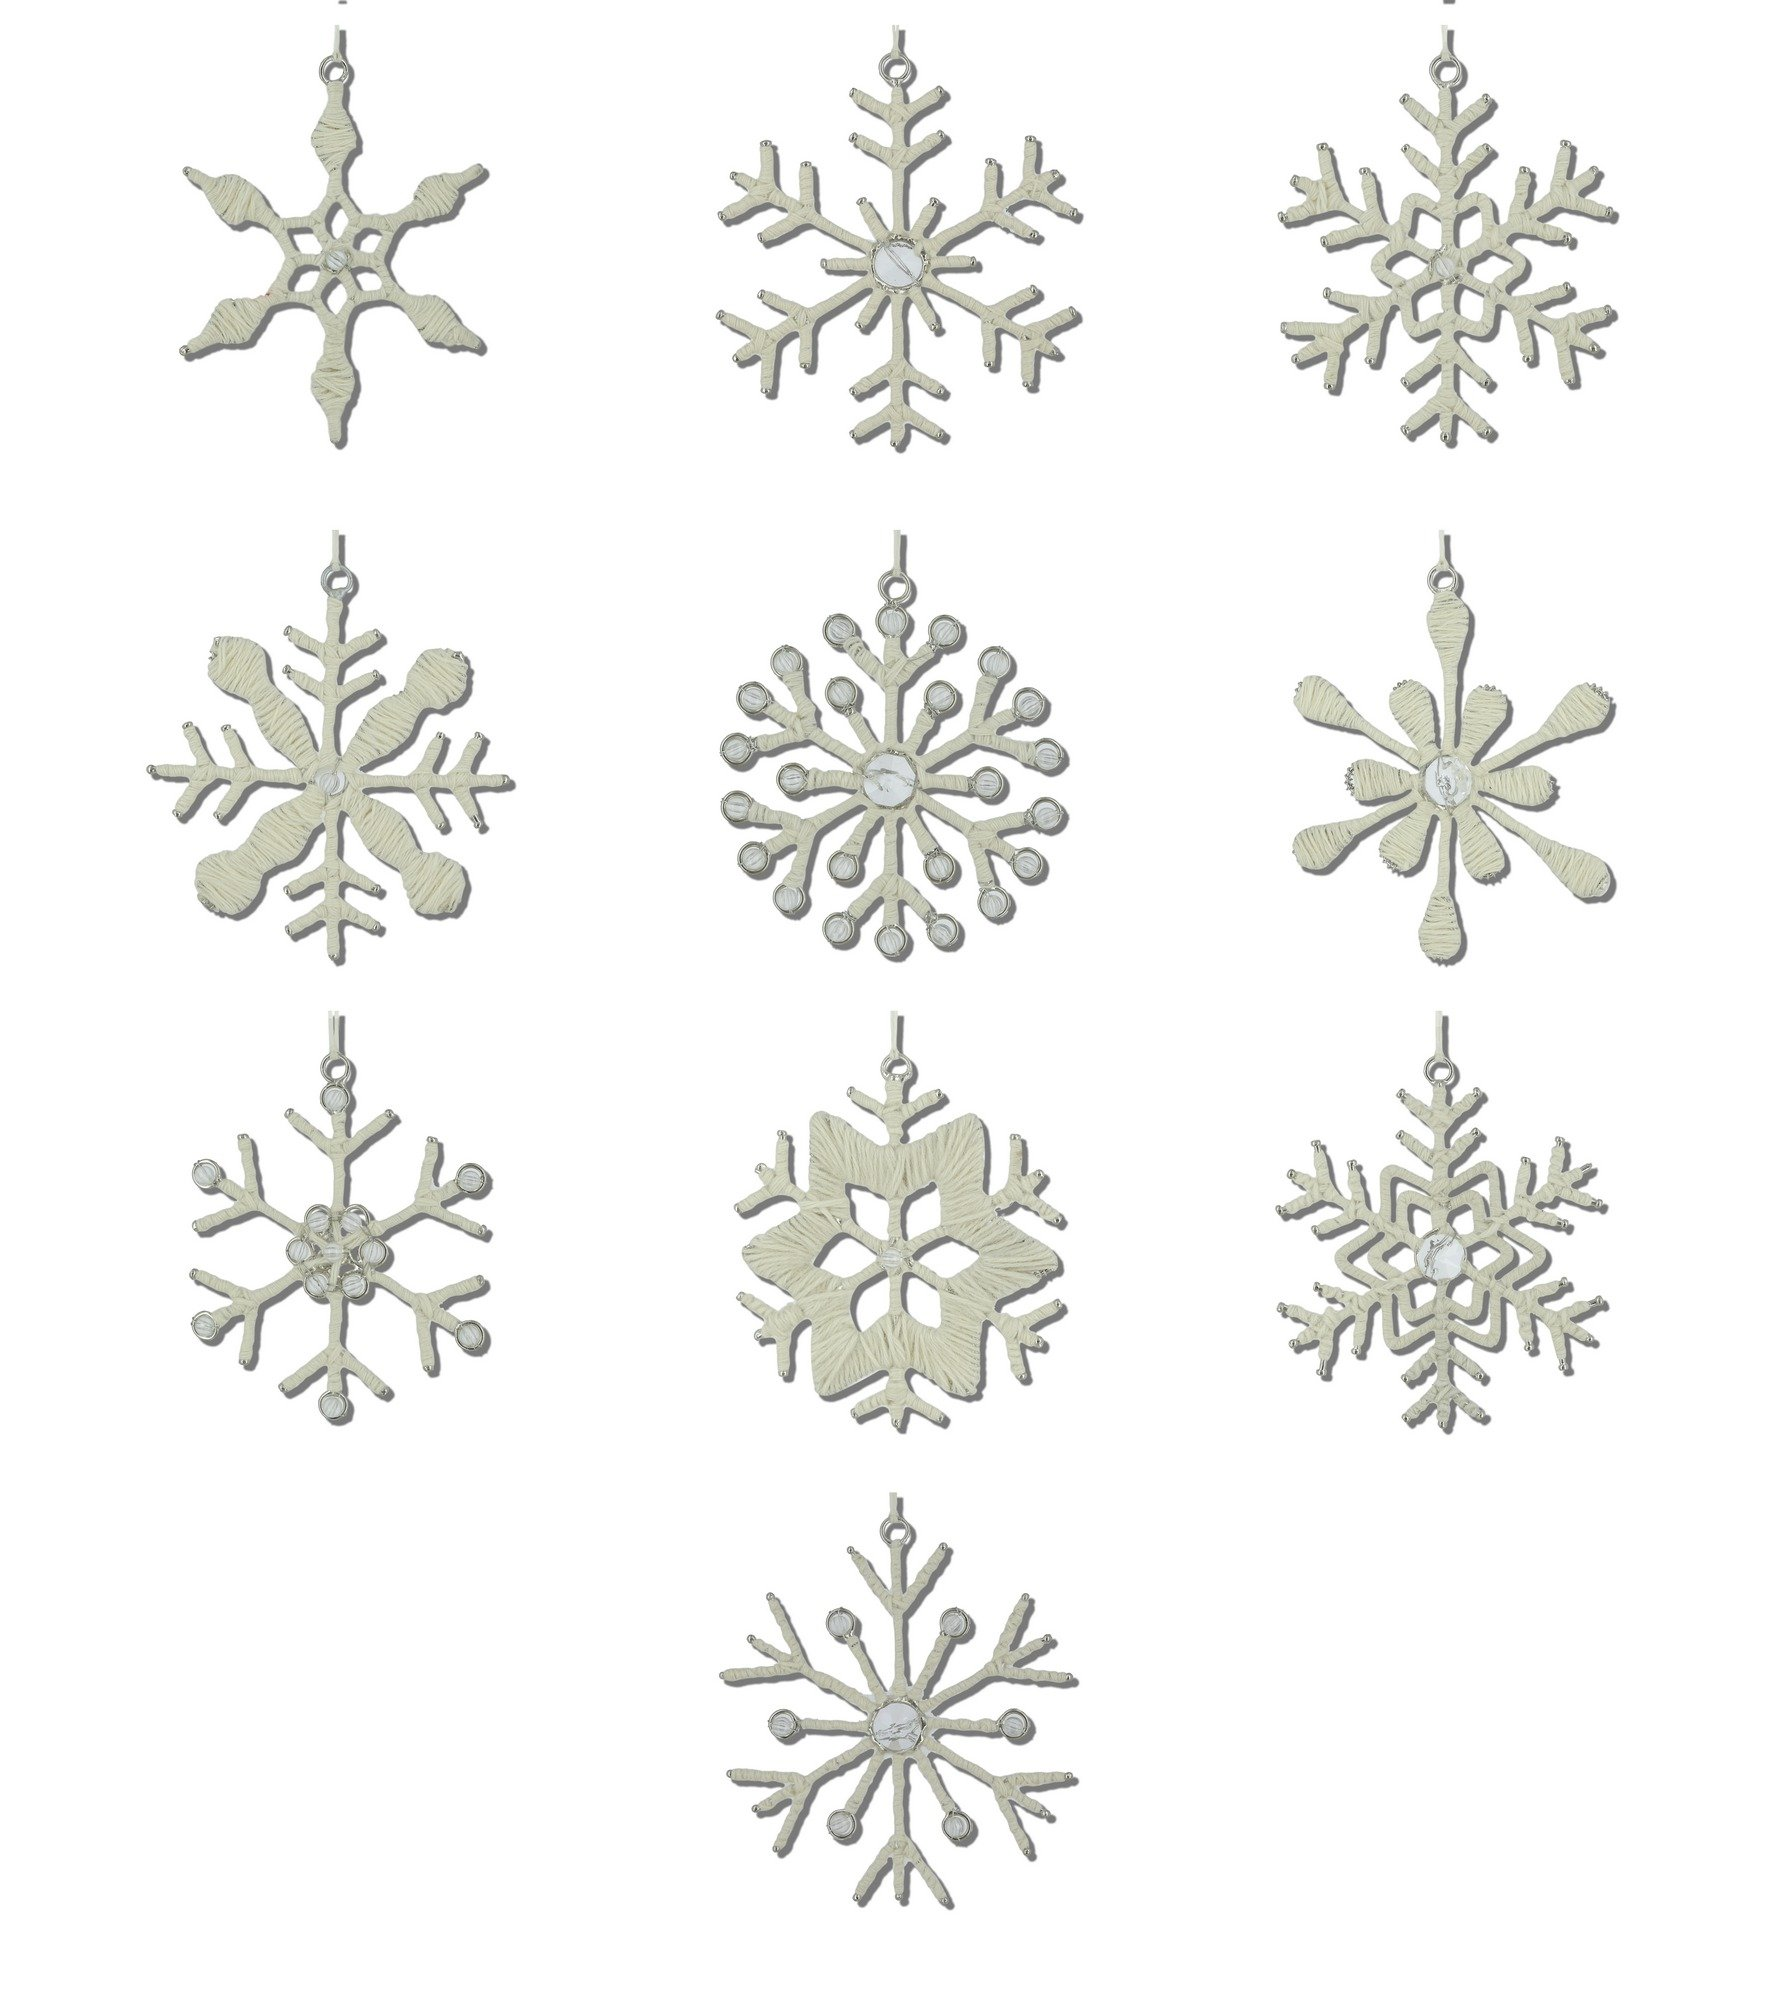 ShalinIndia Handmade Snowflake Ornaments Iron and Wool, 10 Different Light Weight Hanging Christmas Tree decorations,4 Inche